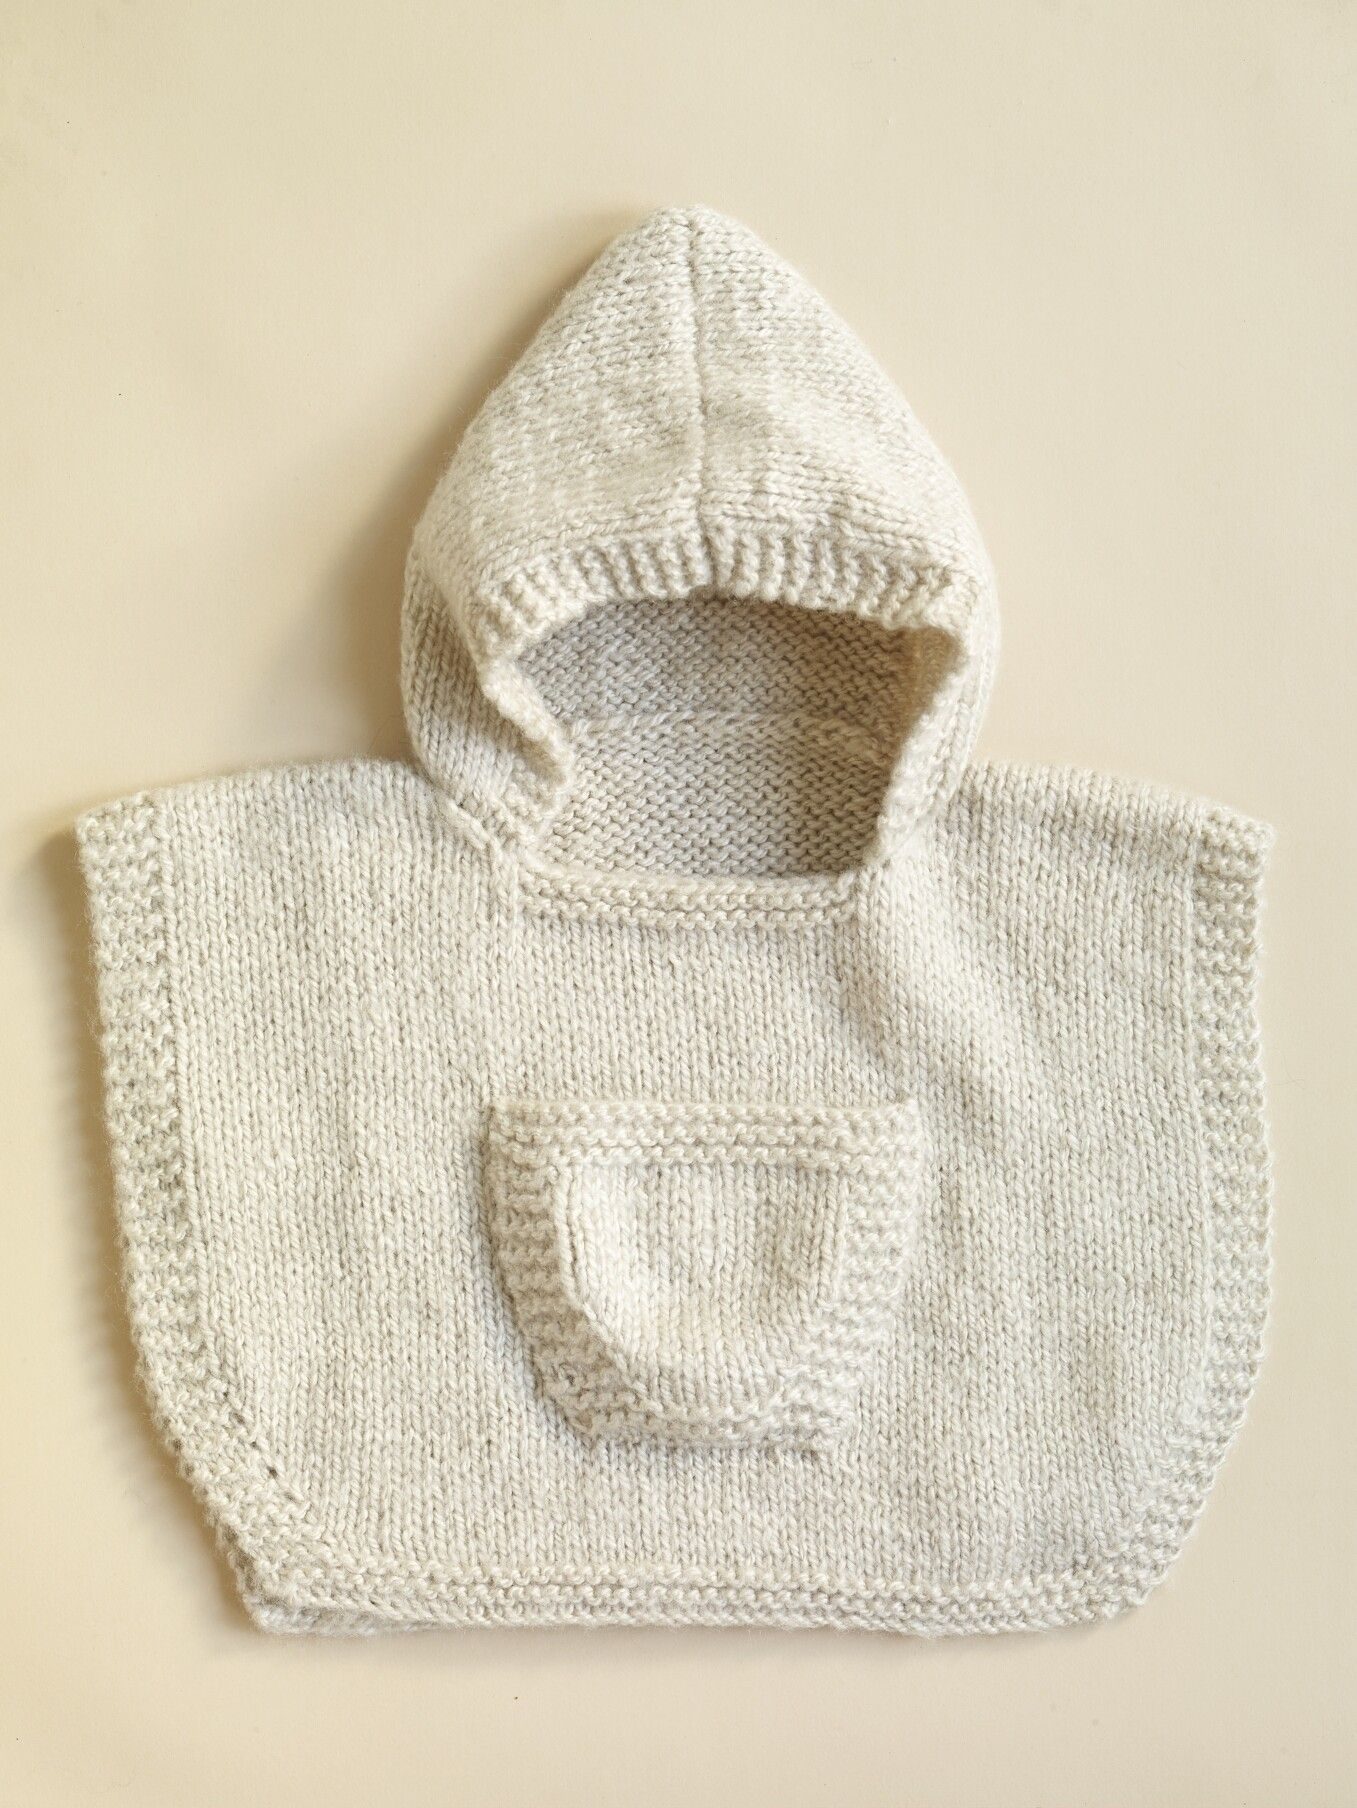 Hooded Baby Poncho Pattern (Knit) | Knitting | Pinterest | Ropa para ...